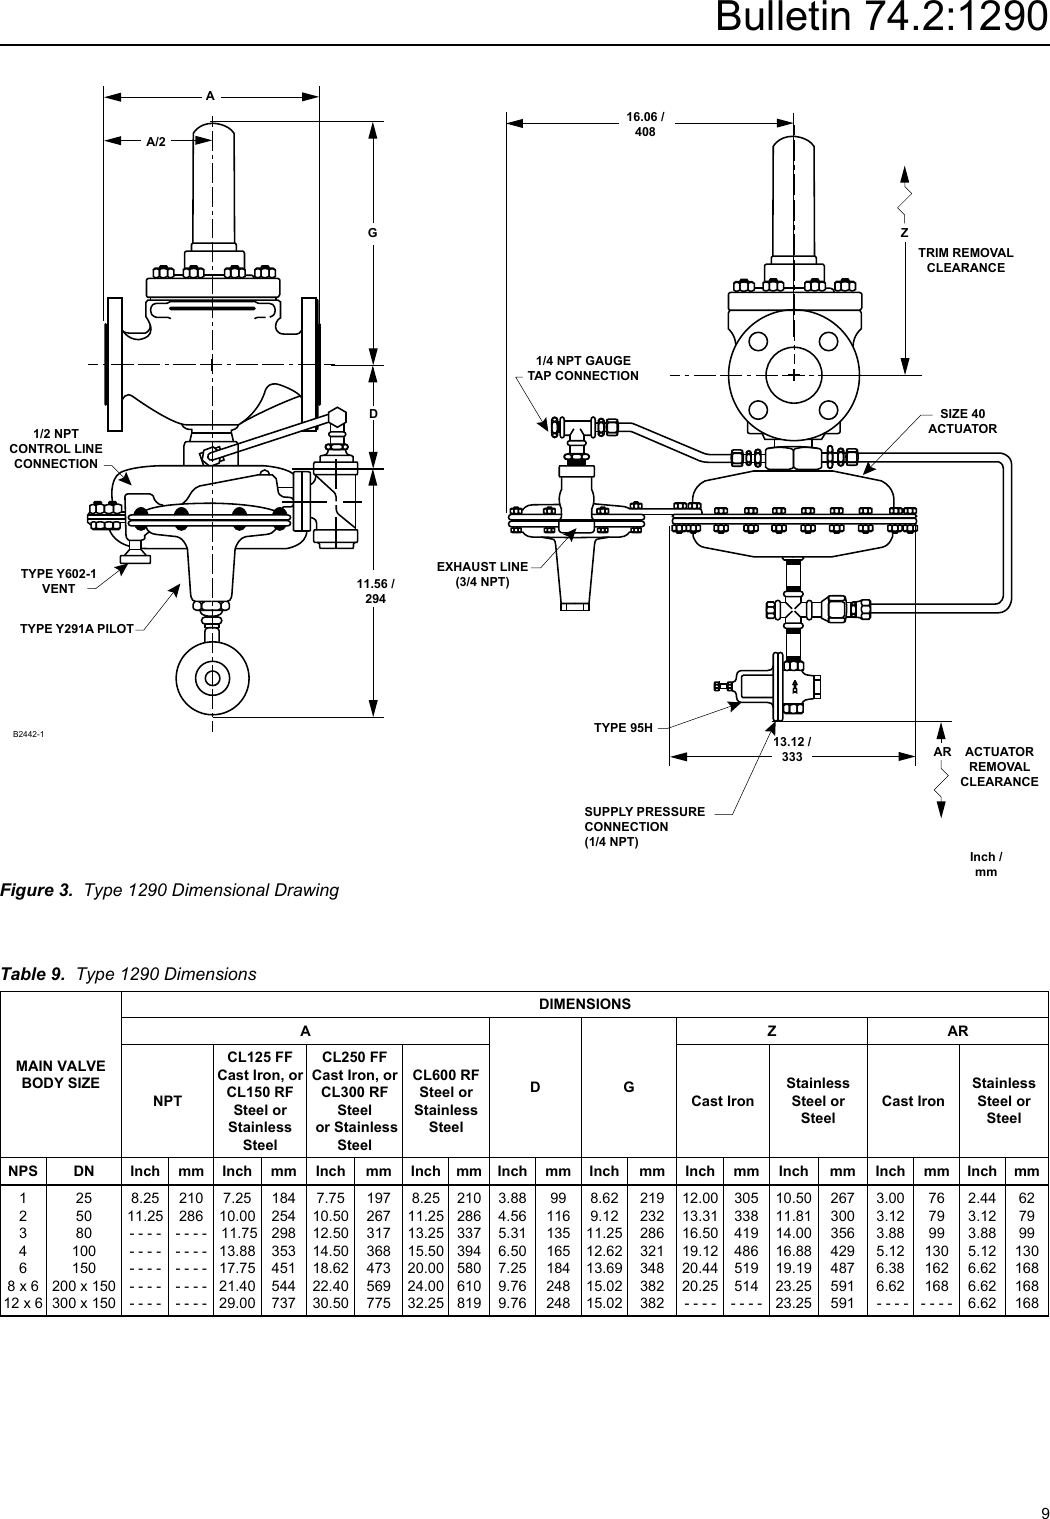 Emerson Type 1290 Vapor Recovery Regulator Data Sheet